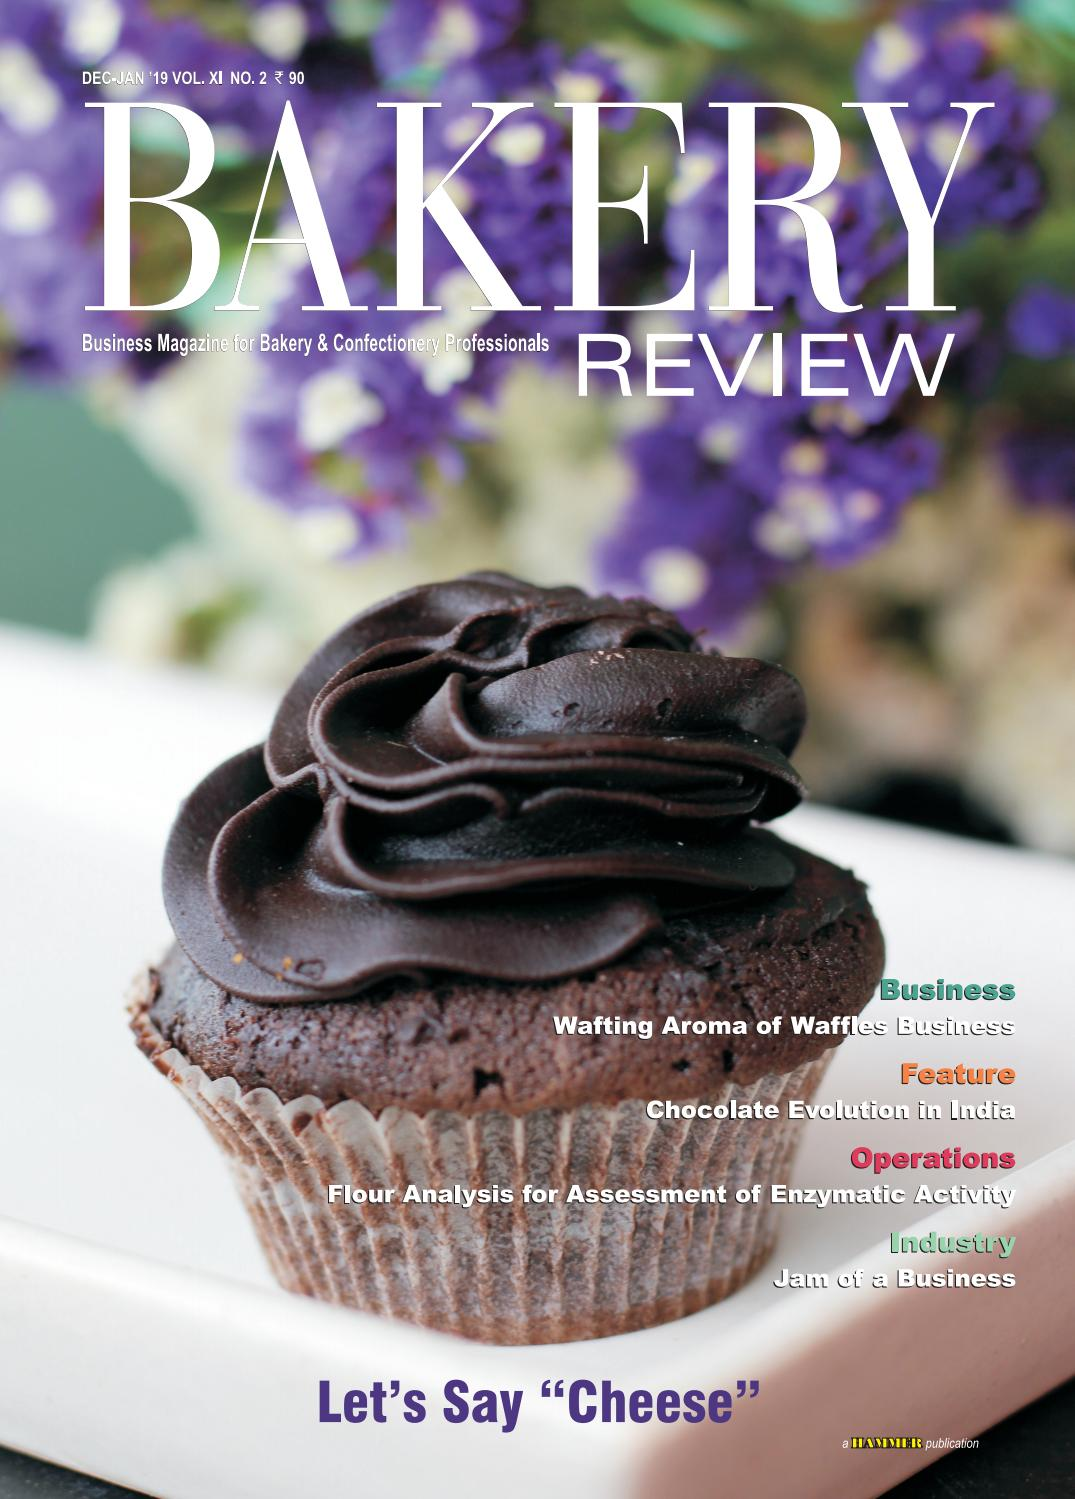 Bakery Review (Dec-Jan2019) by Bakery Review - issuu